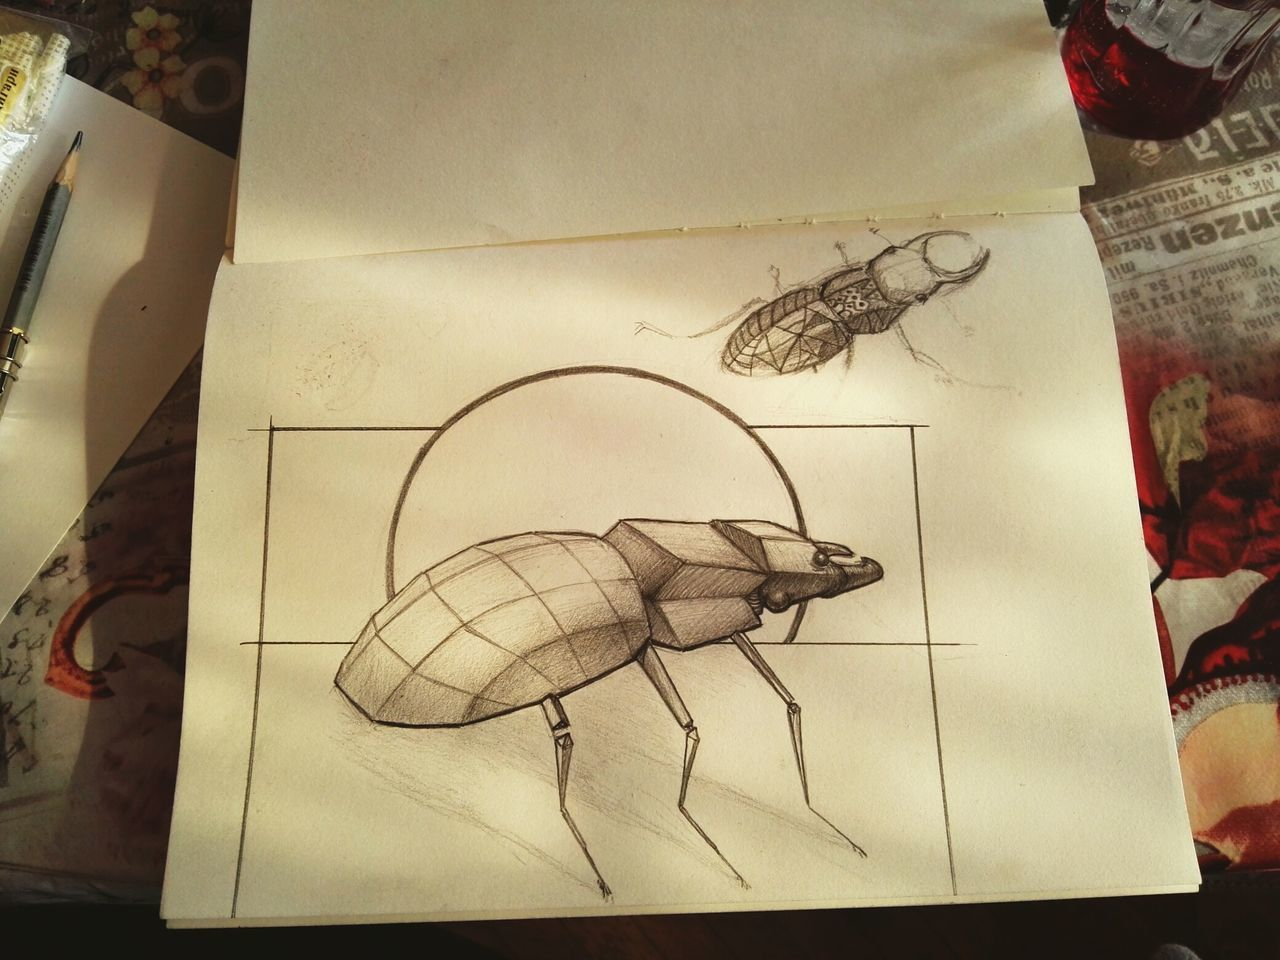 Paper No People Pencil Drawing Day Indoors  Sketch Artworks Handmade Bumblebee Horned Future Designattack Stylization Animal Study Wooden Texture Wood - Material Pencil Creativity